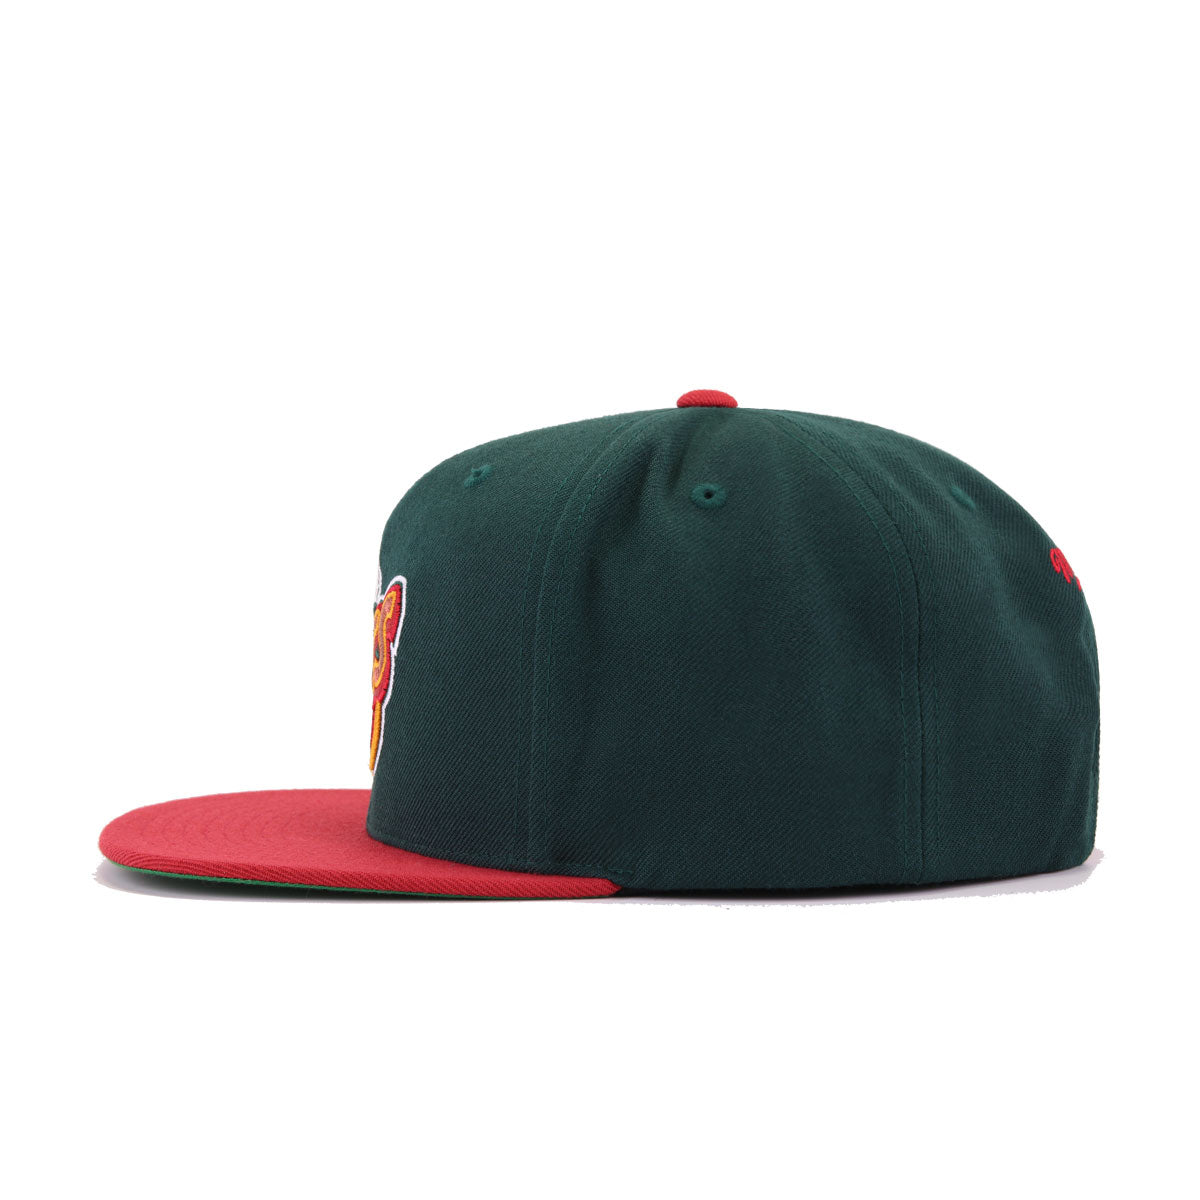 Seattle Supersonics Dark Green Cardinal Red Hardwood Classic Mitchell and Ness Snapback